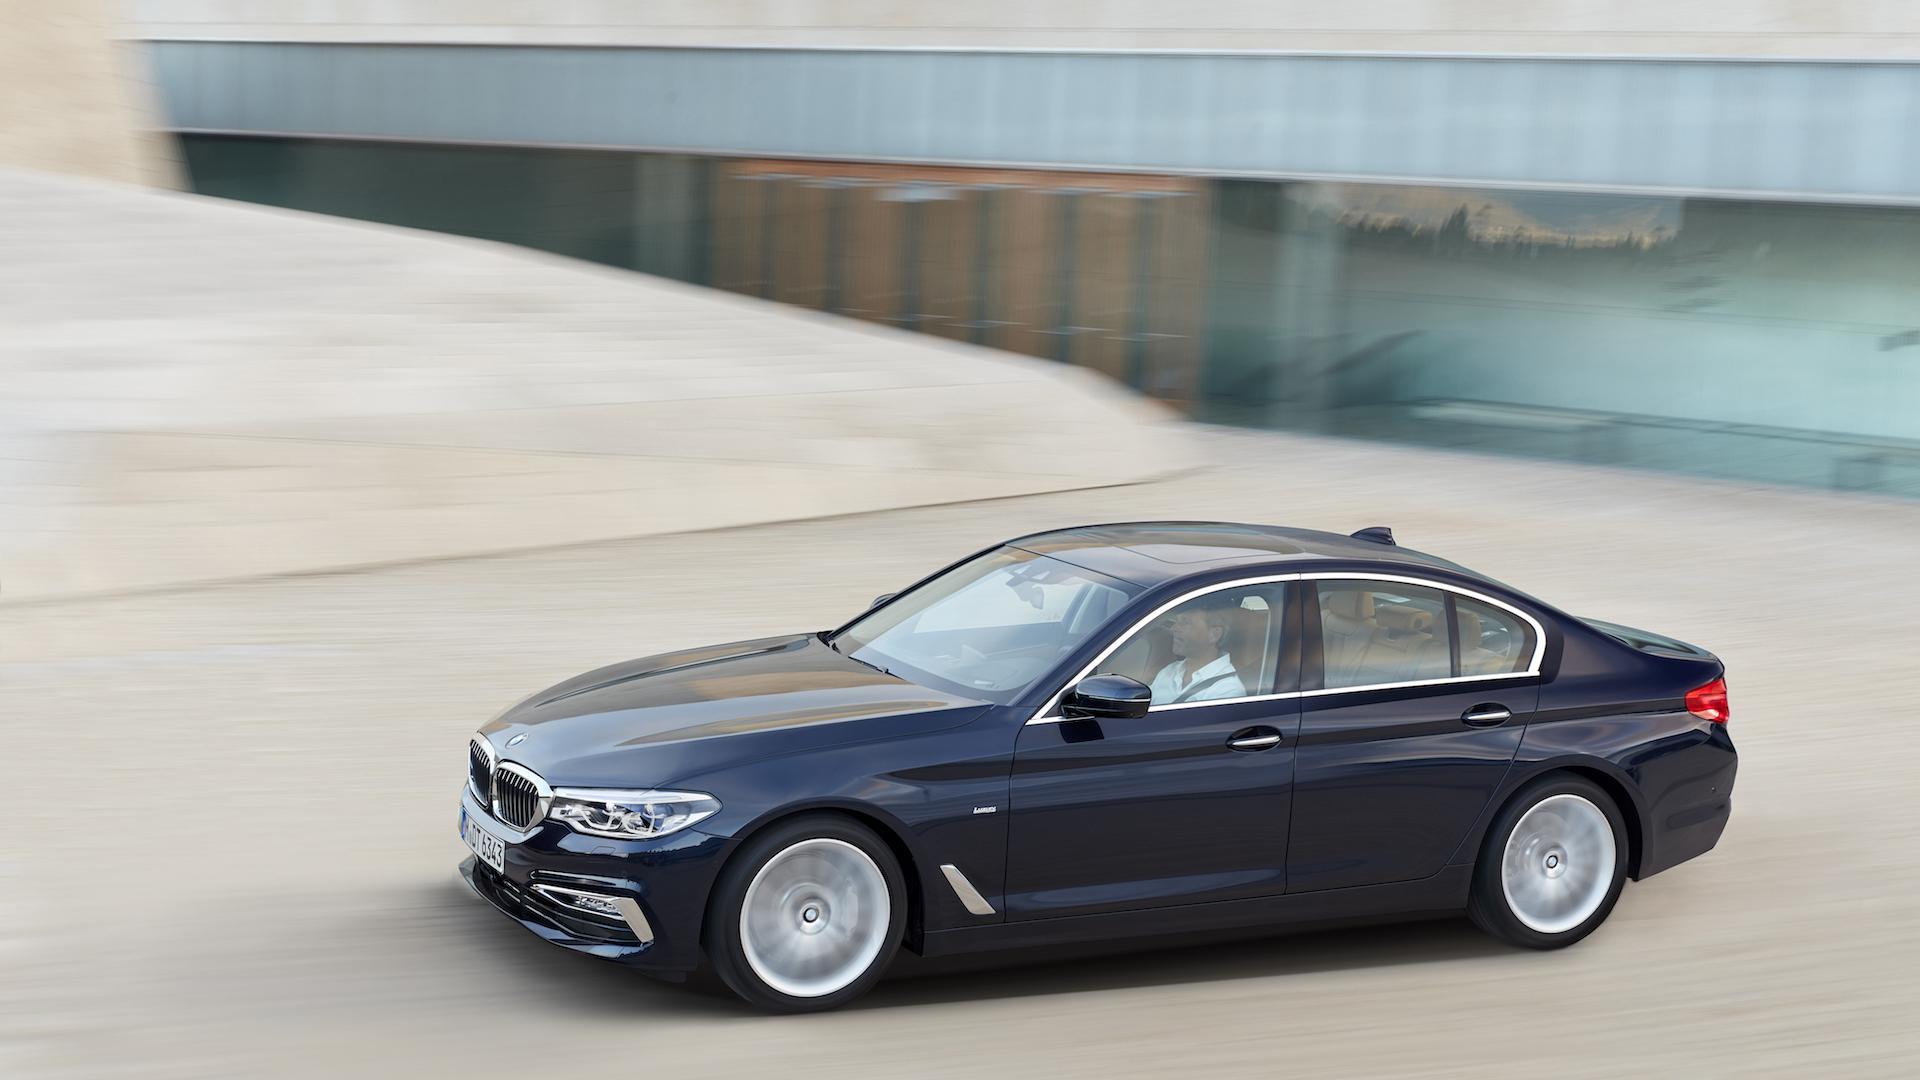 bmw-serie5-2017-27122016-in3